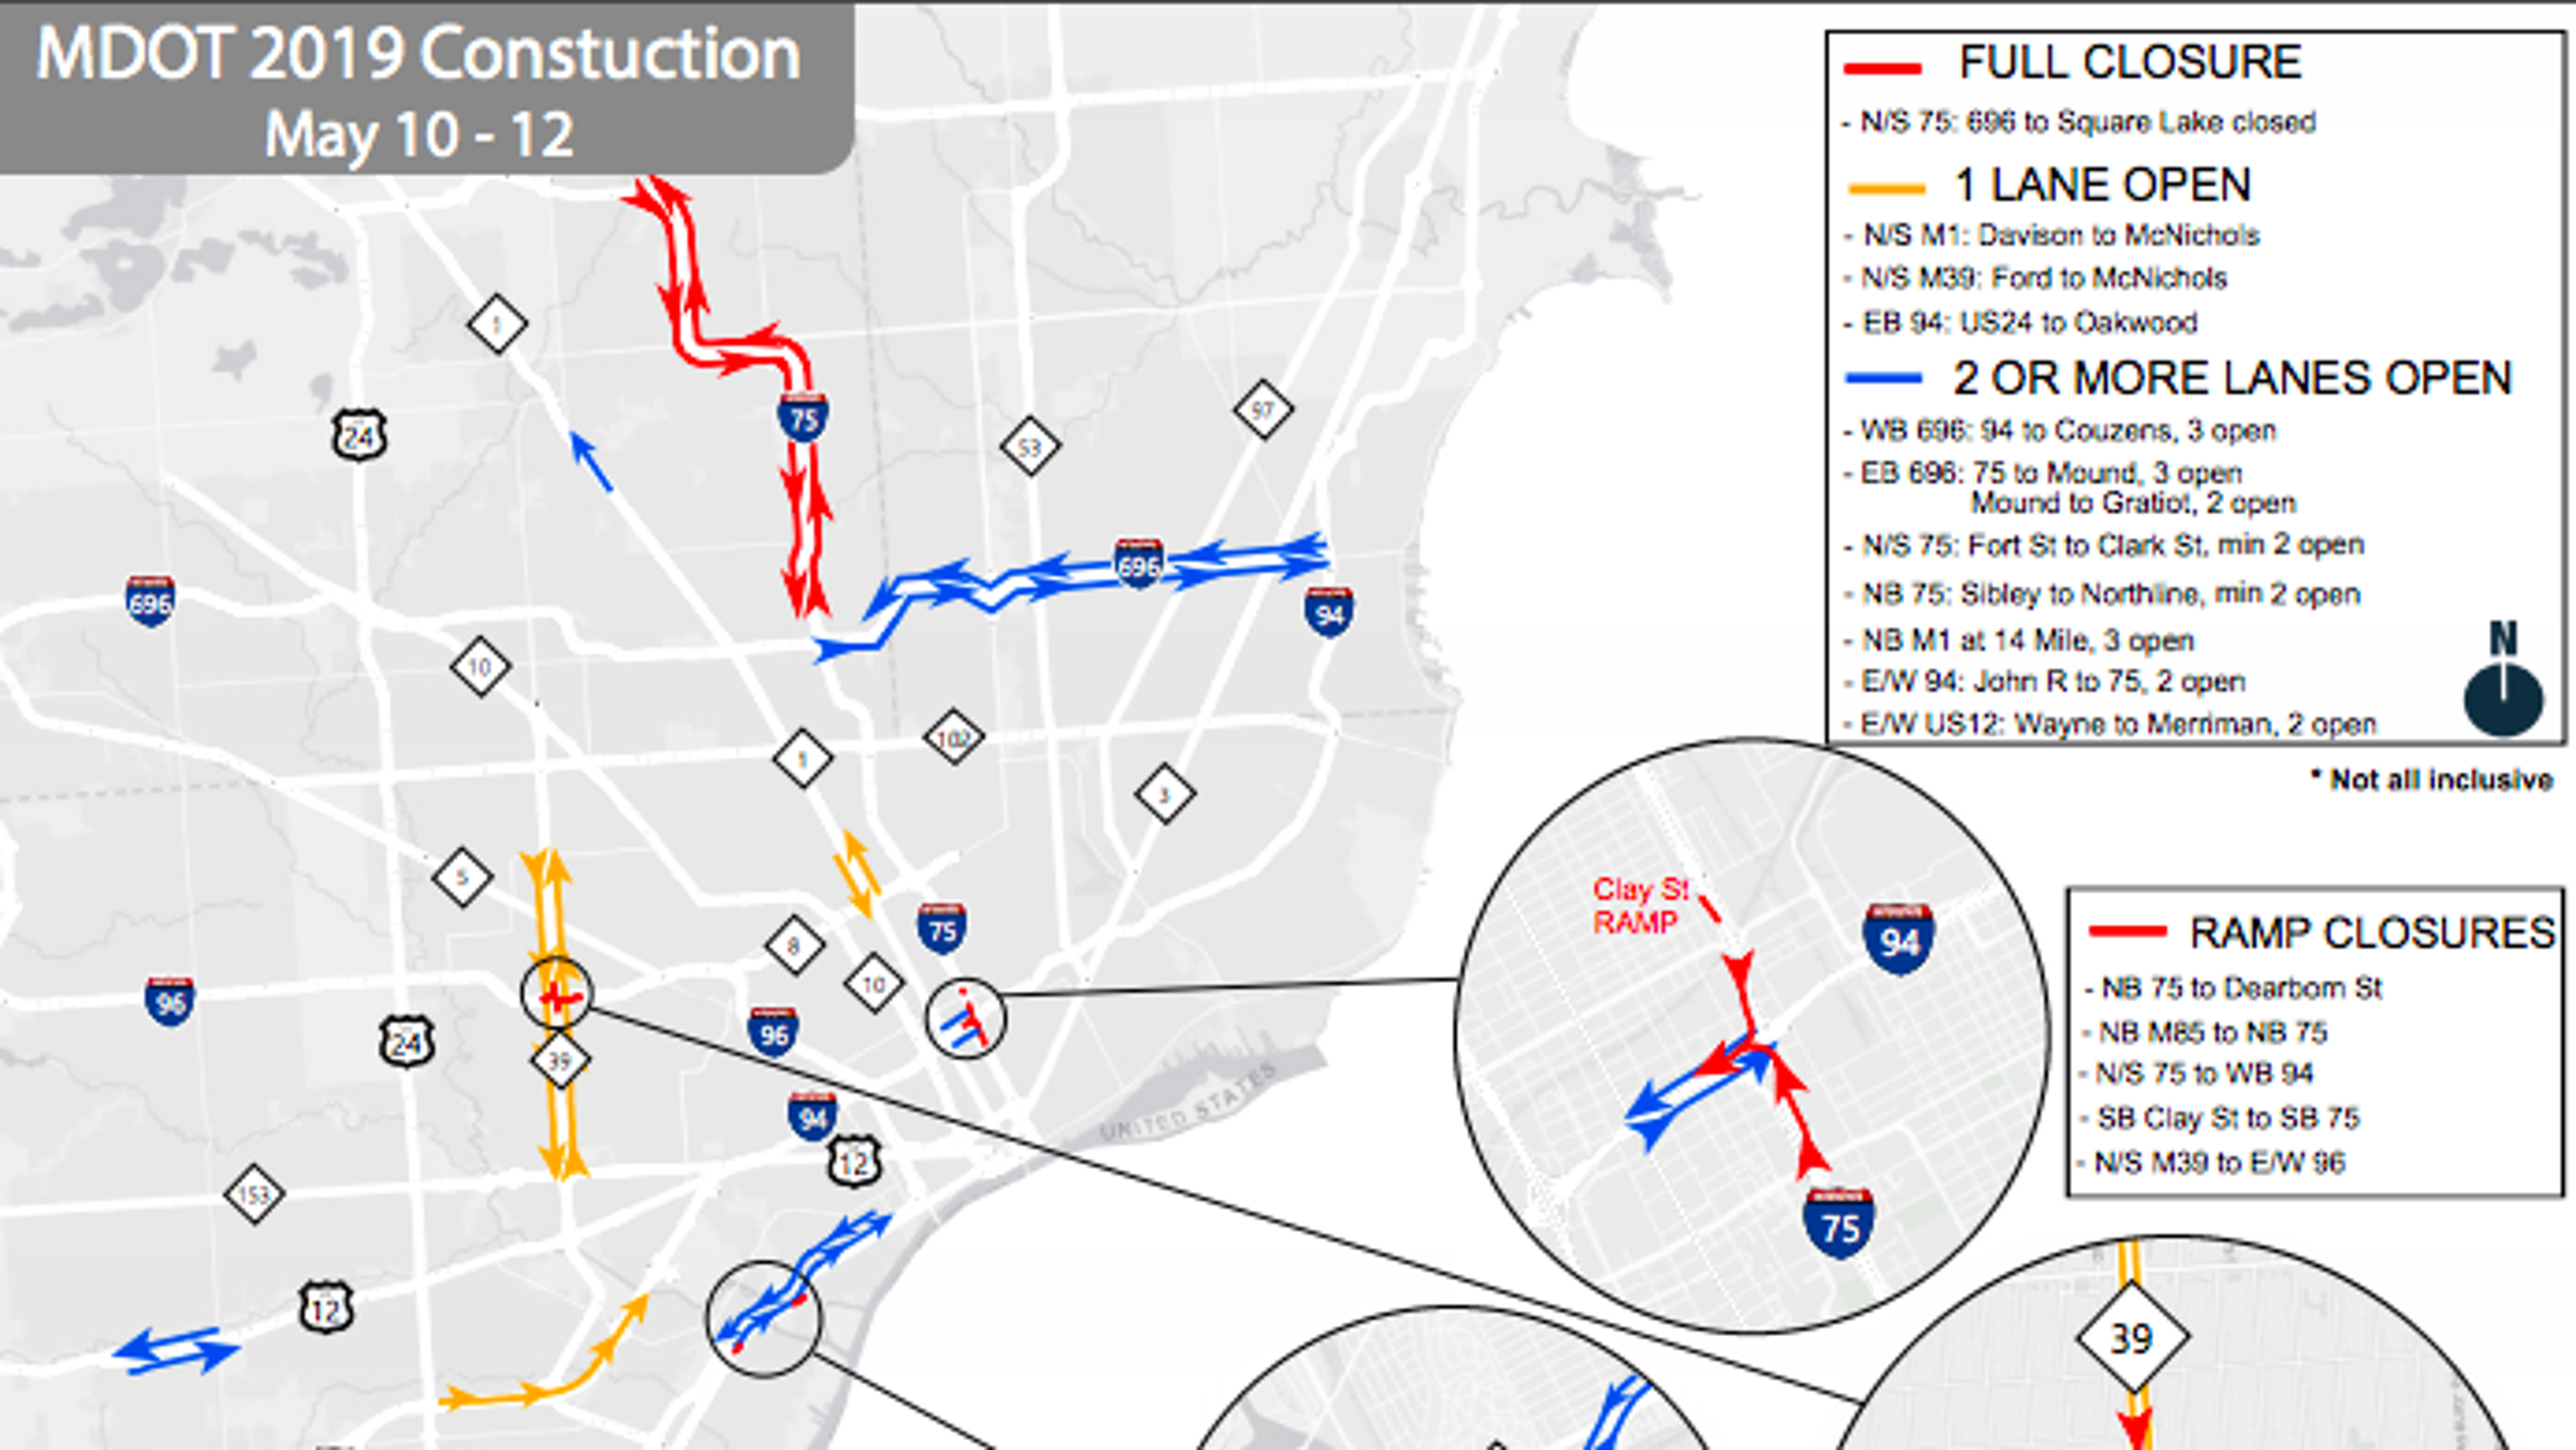 MDOT Construction: Large Stretch Of I-75 Closed This Weekend